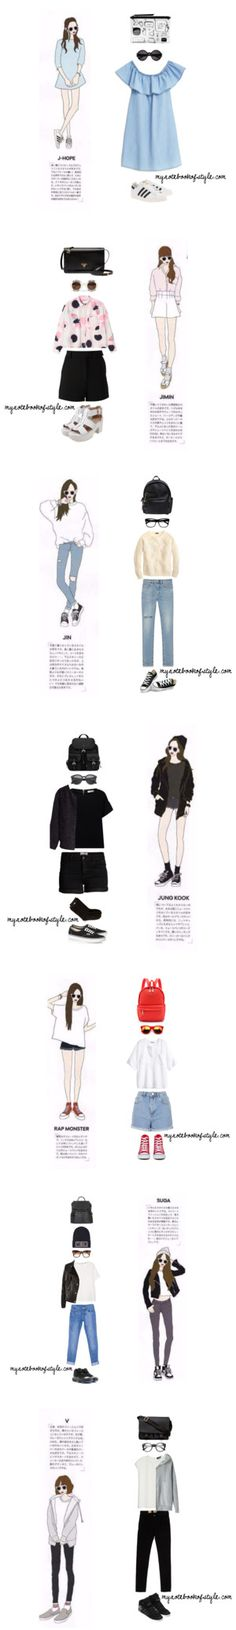 BTS ideal girl fashion by the92liner on Polyvore featuring мода, MANGO, adidas Originals, Monki, Yves Saint Laurent, bts, BangtanBoys, bangtansonyeondan, Jhope and Wildfox